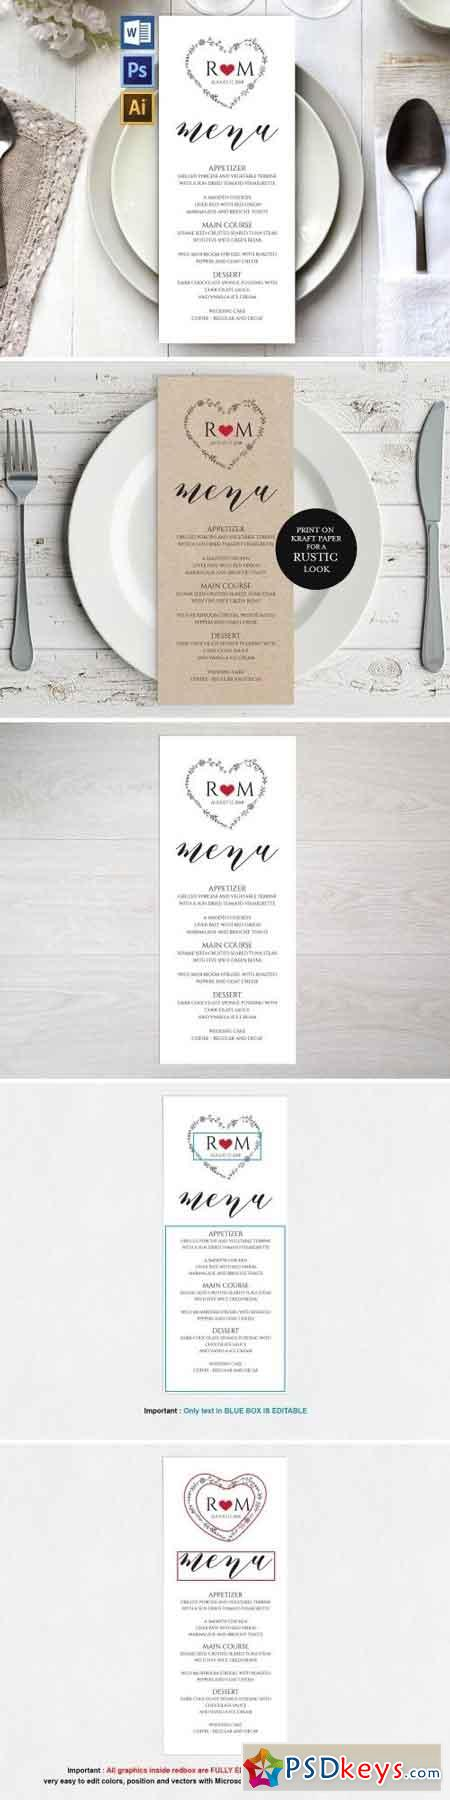 Wedding Menu Template Wpc 126 1550247